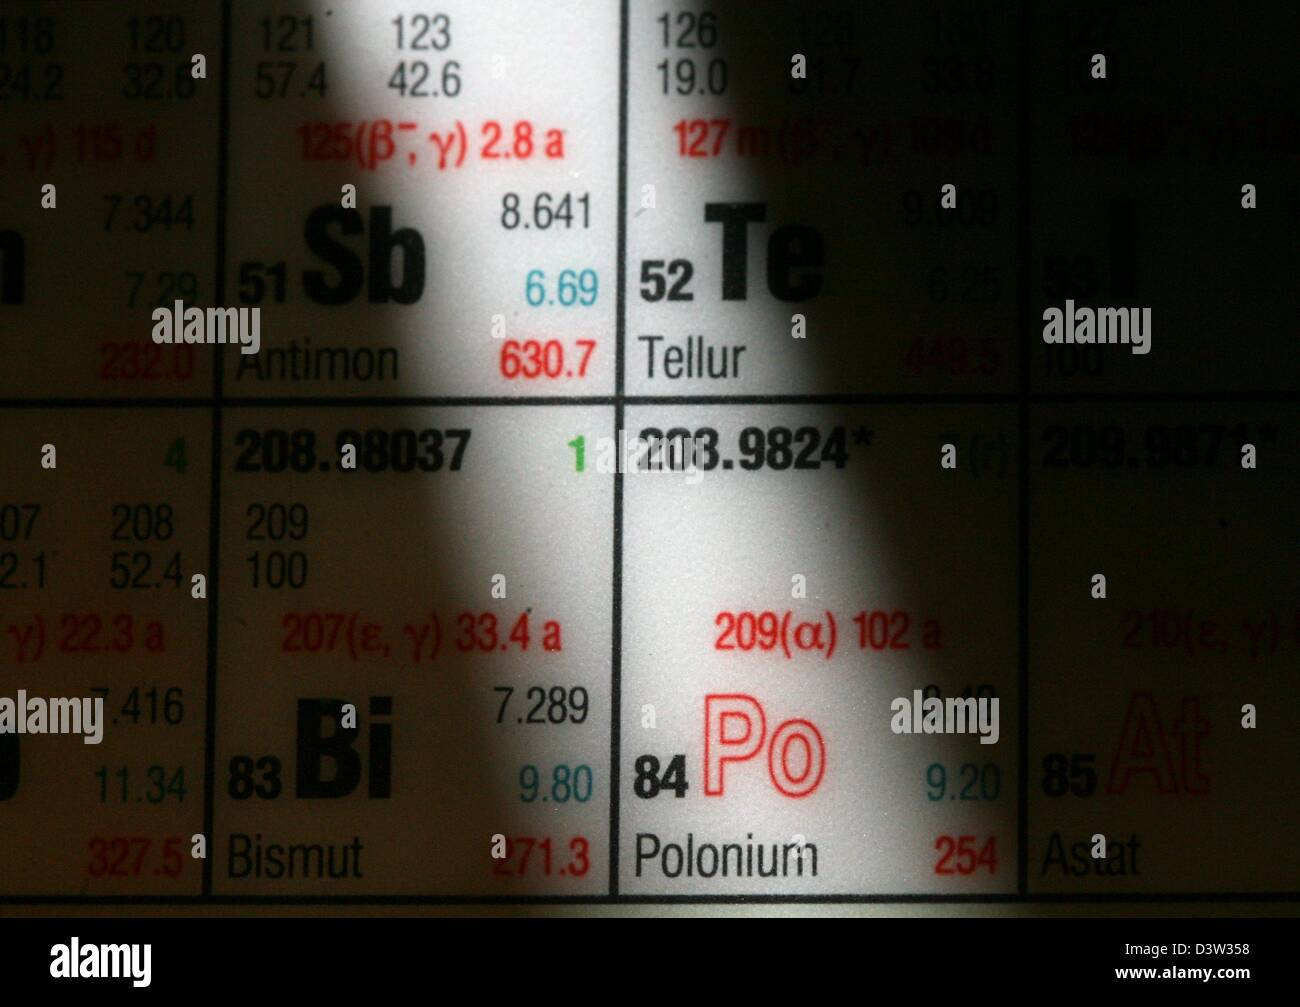 Periodic table polonium choice image periodic table images periodic table 84 gallery periodic table images periodic table polonium image collections periodic table images polonium gamestrikefo Gallery